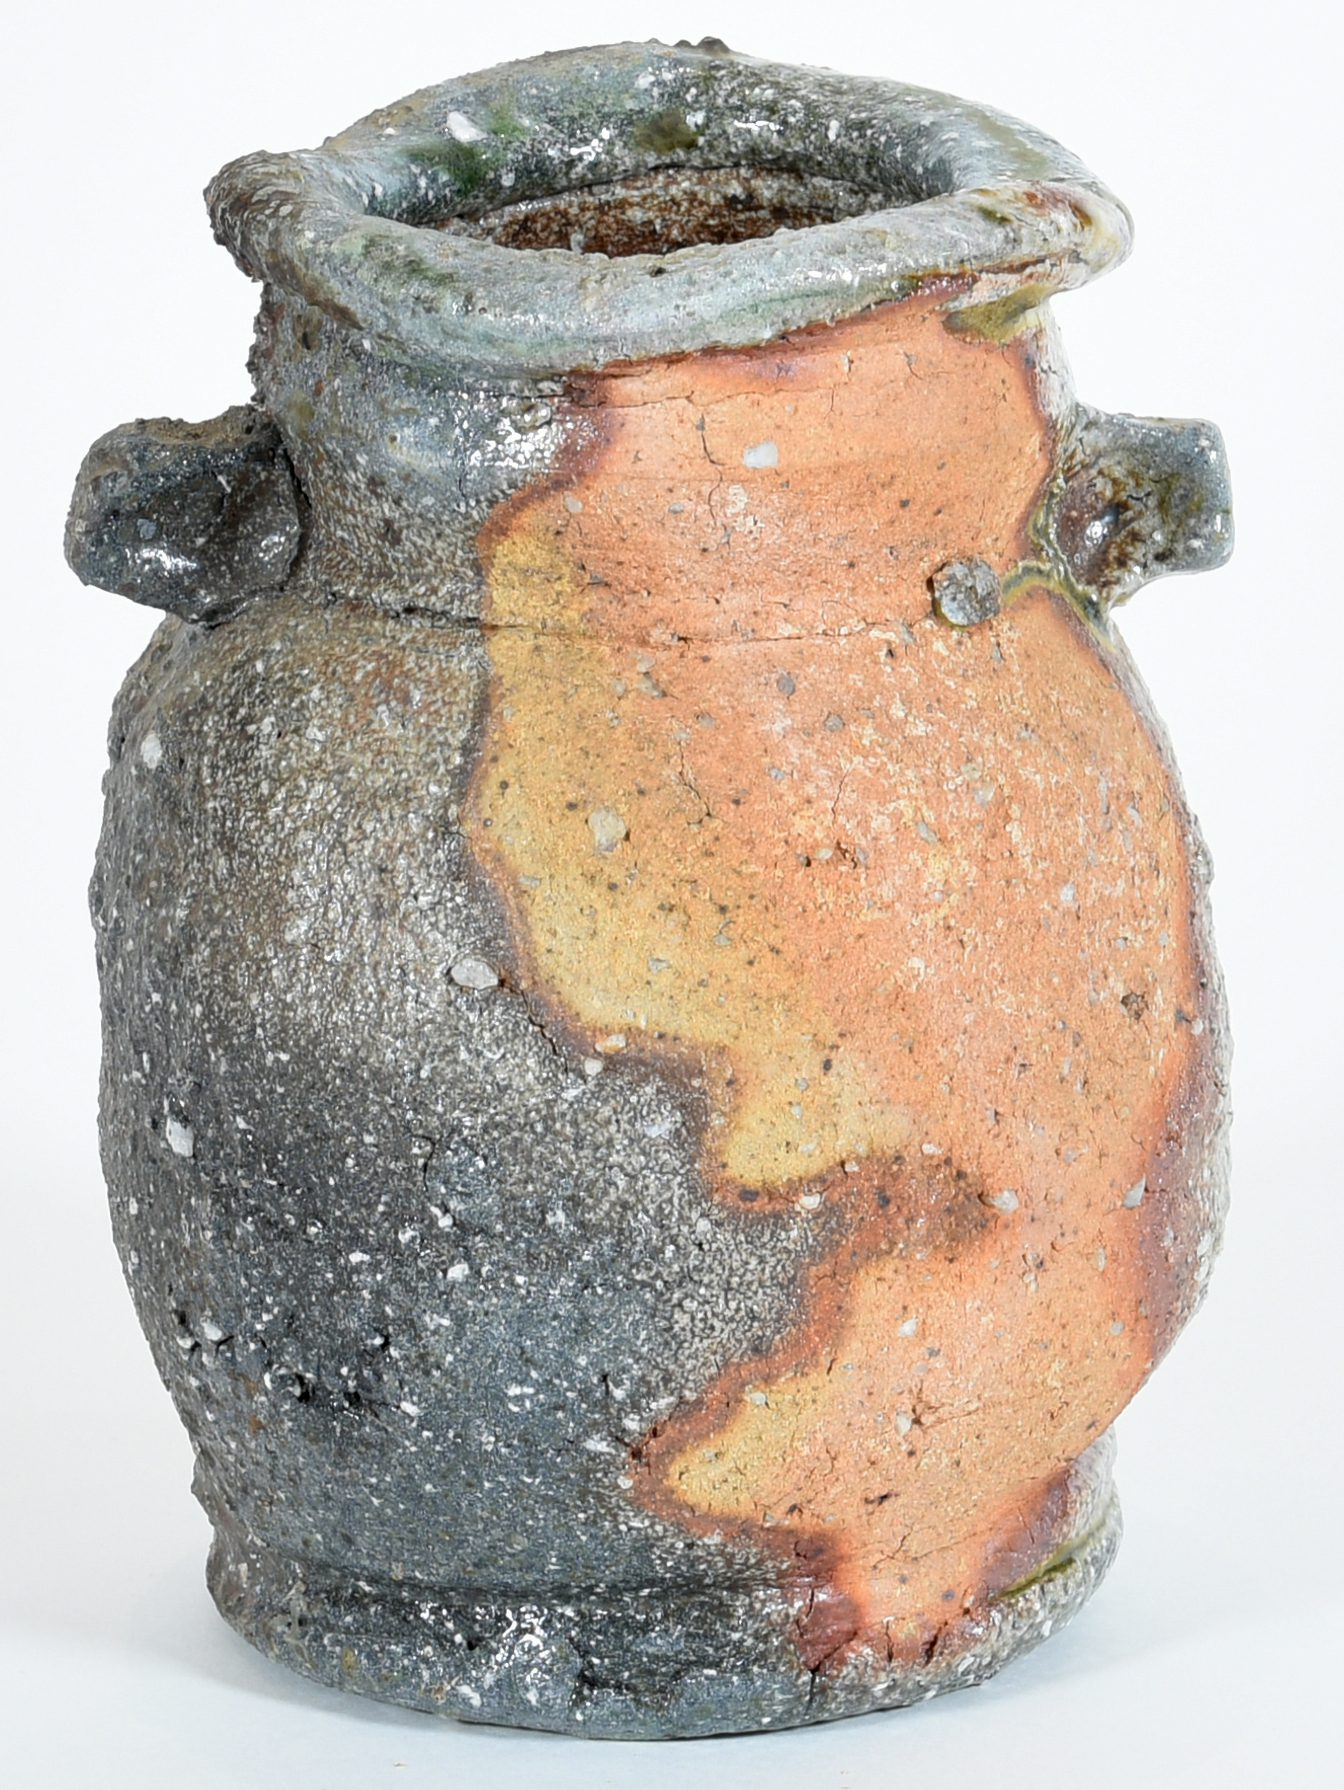 Owen Rye Vase 7, 1995, Wood fired ceramic and ash, 19 x 14 x 14 cm, Latrobe Regional Gallery Collection, purchased 2019.